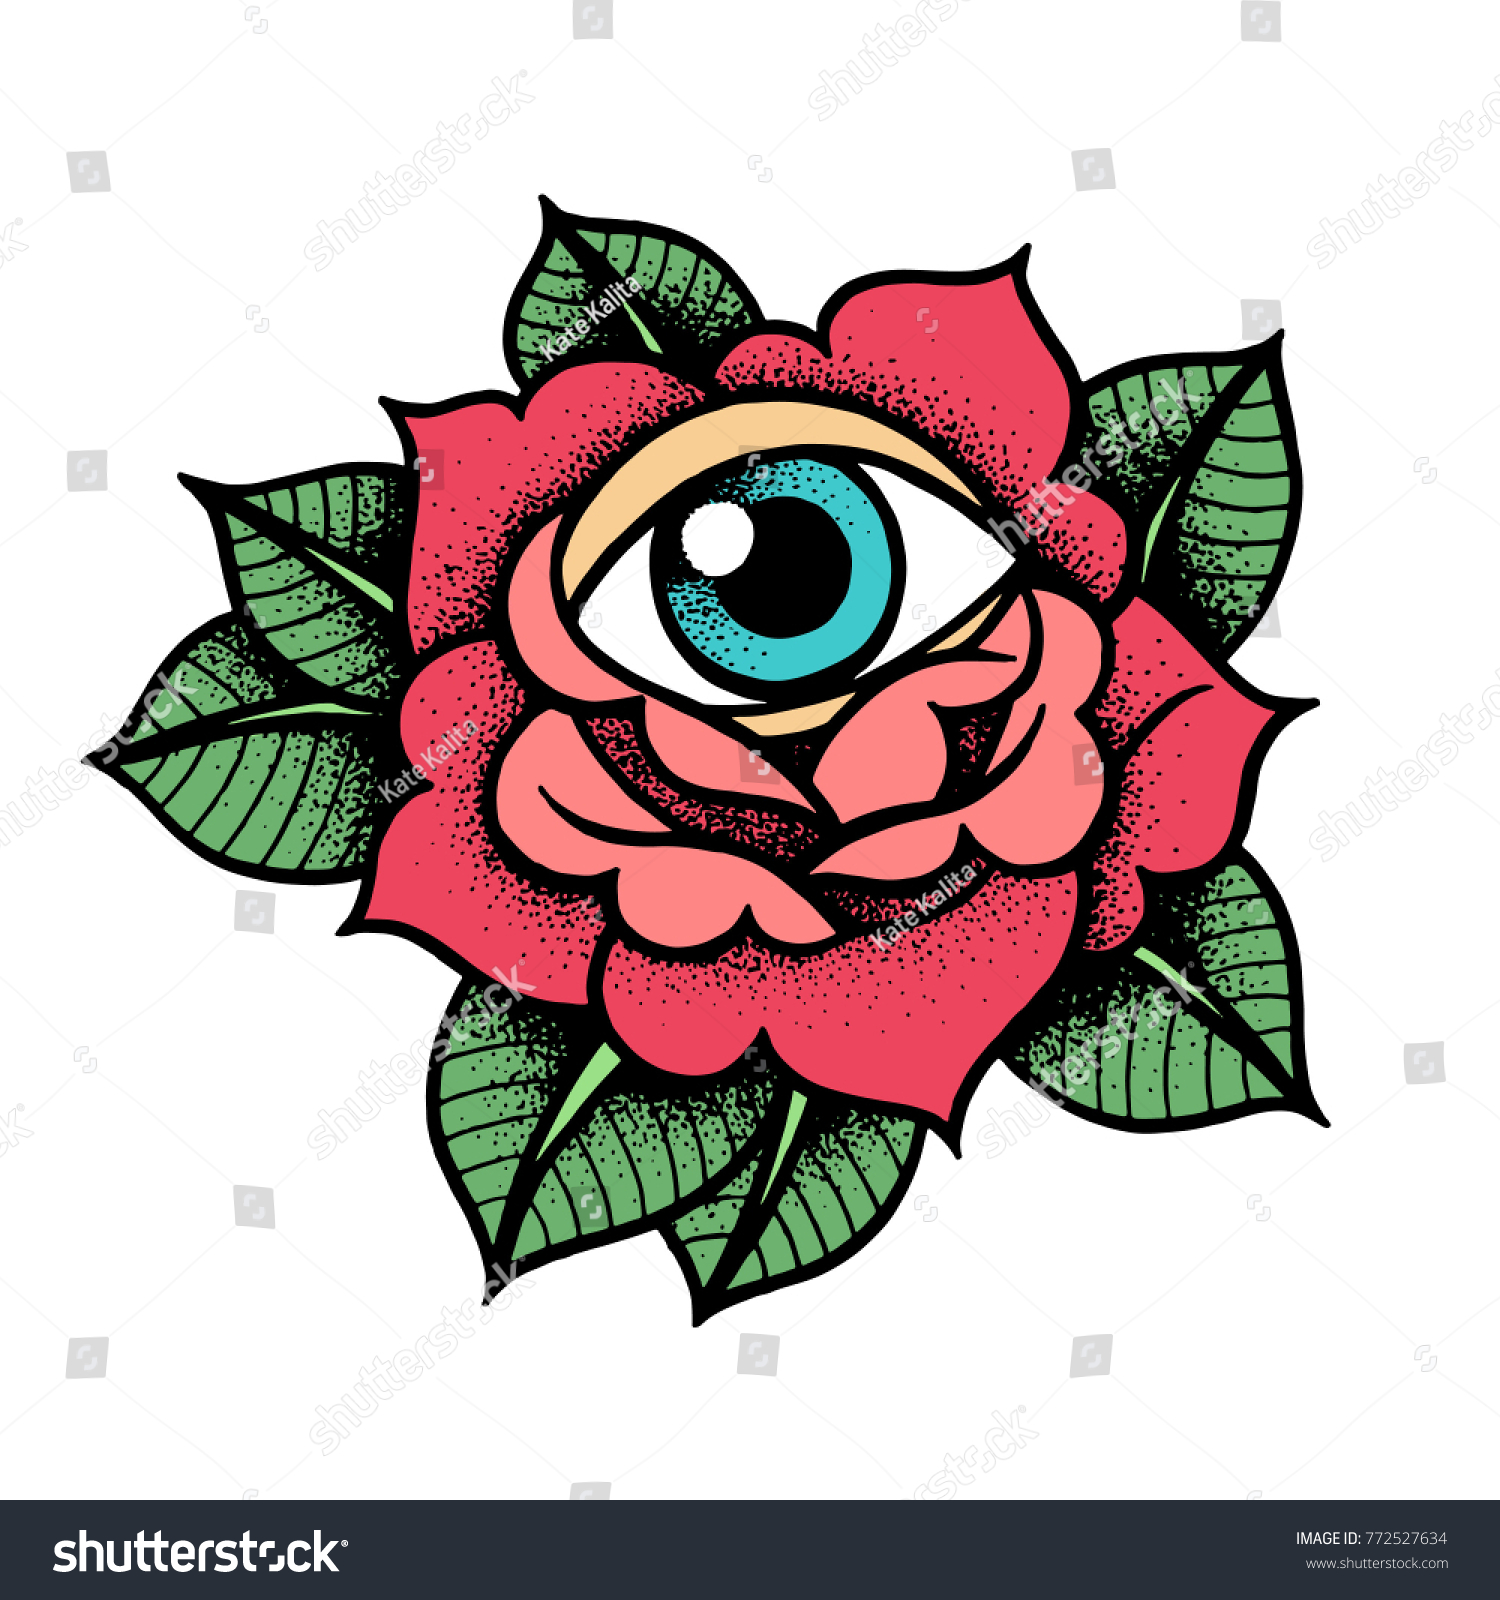 Old School Rose Tattoo Eye Traditional Stock Vector 772527634 ...